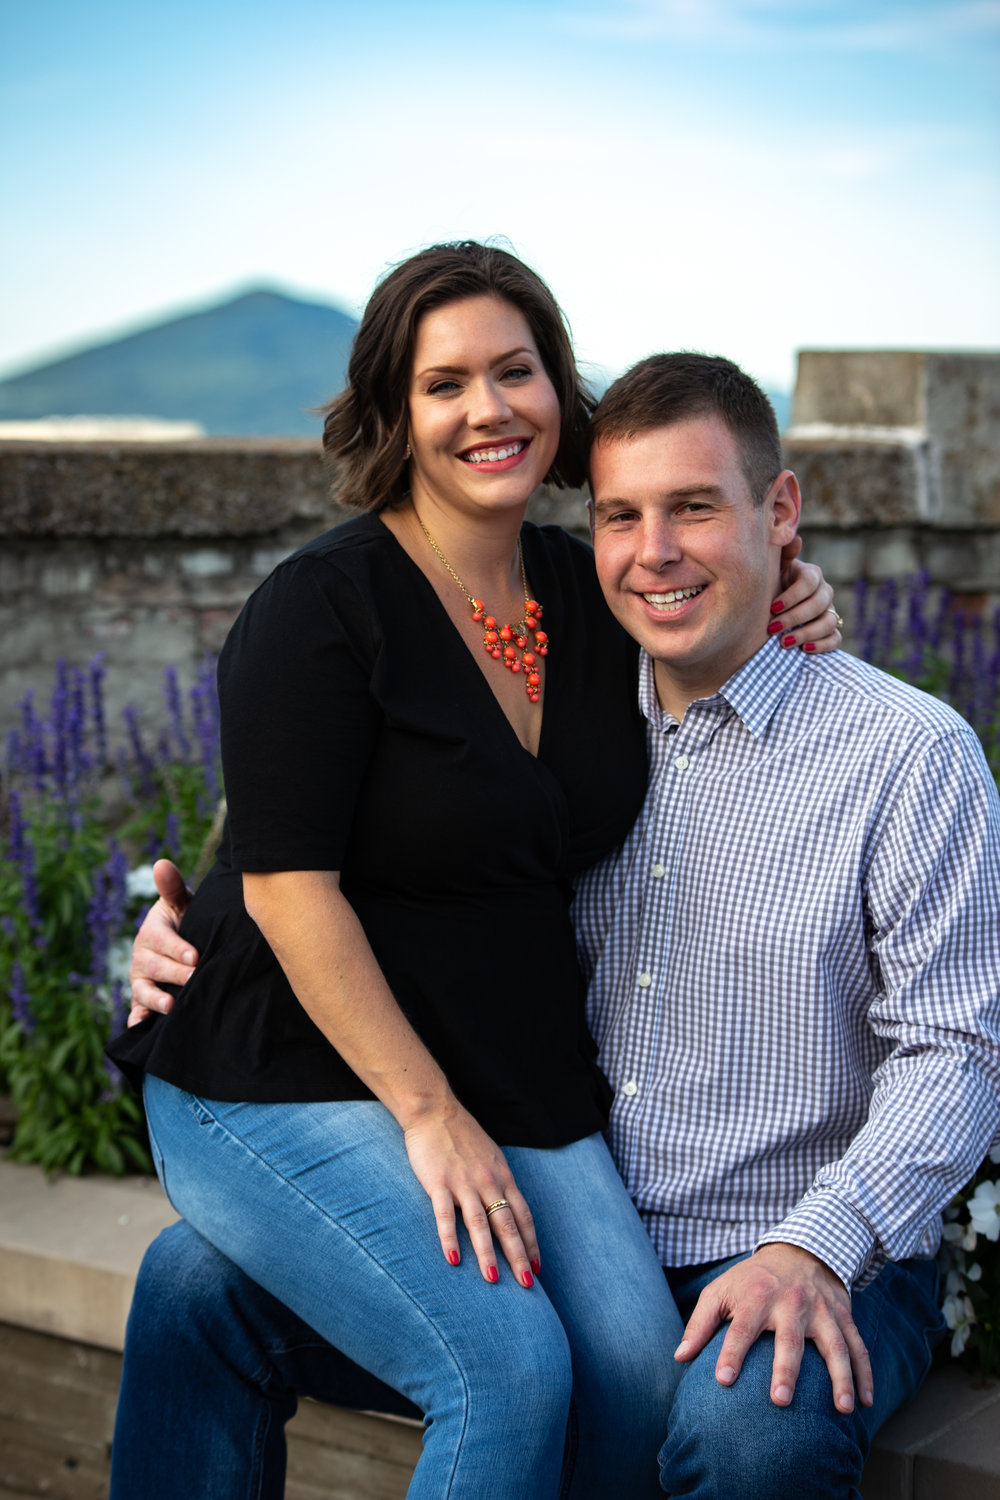 center-in-the-square-downtown-roanoke-urban-rooftop-engagment-wedding-love-couple-mountain-smile-laughing-flower-bed-concrete